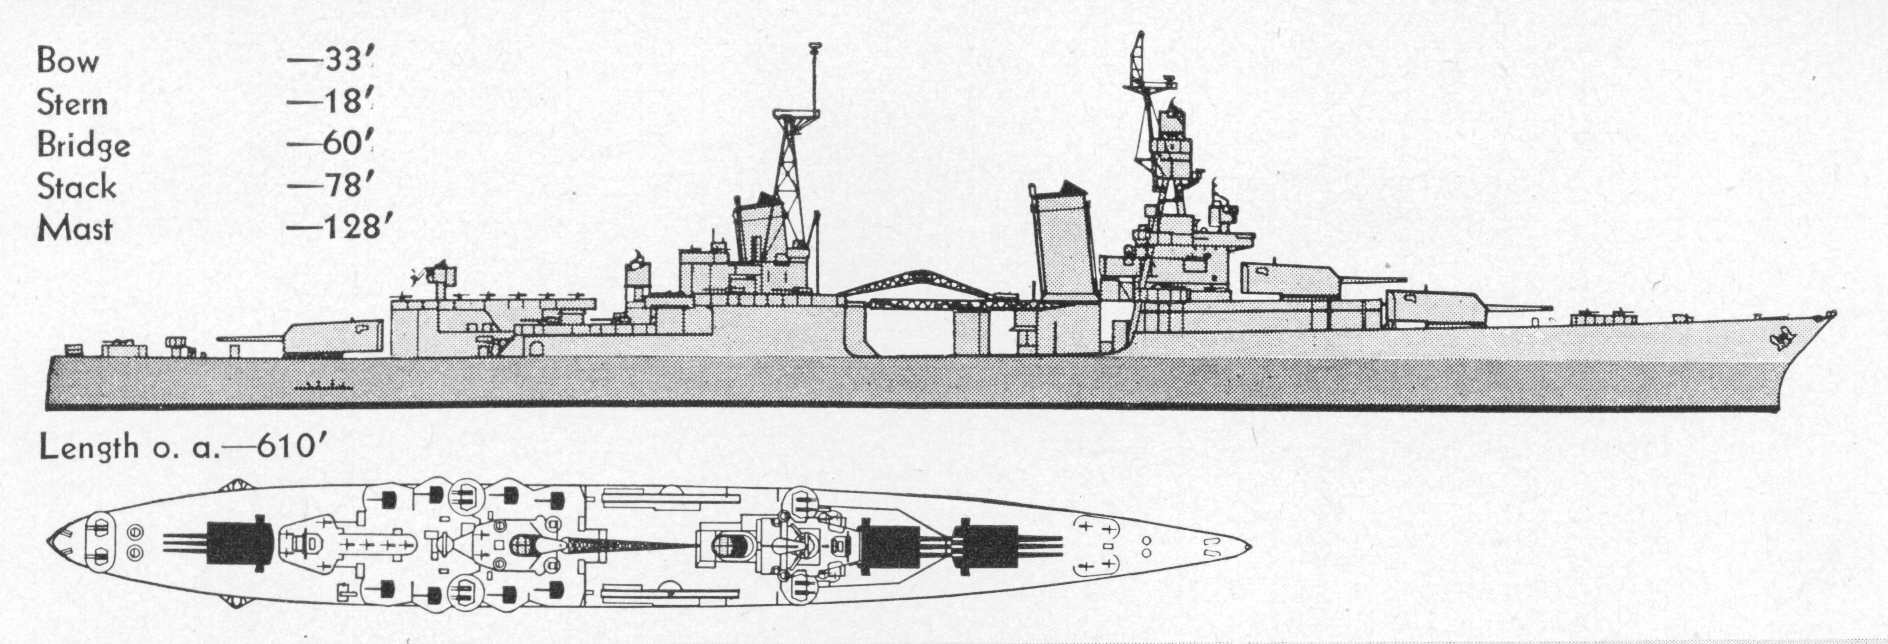 hight resolution of i maxed out my tripod webpage space with ship drawings and am moving them to make space so see also http www coatneyhistory com for oni ship drawings